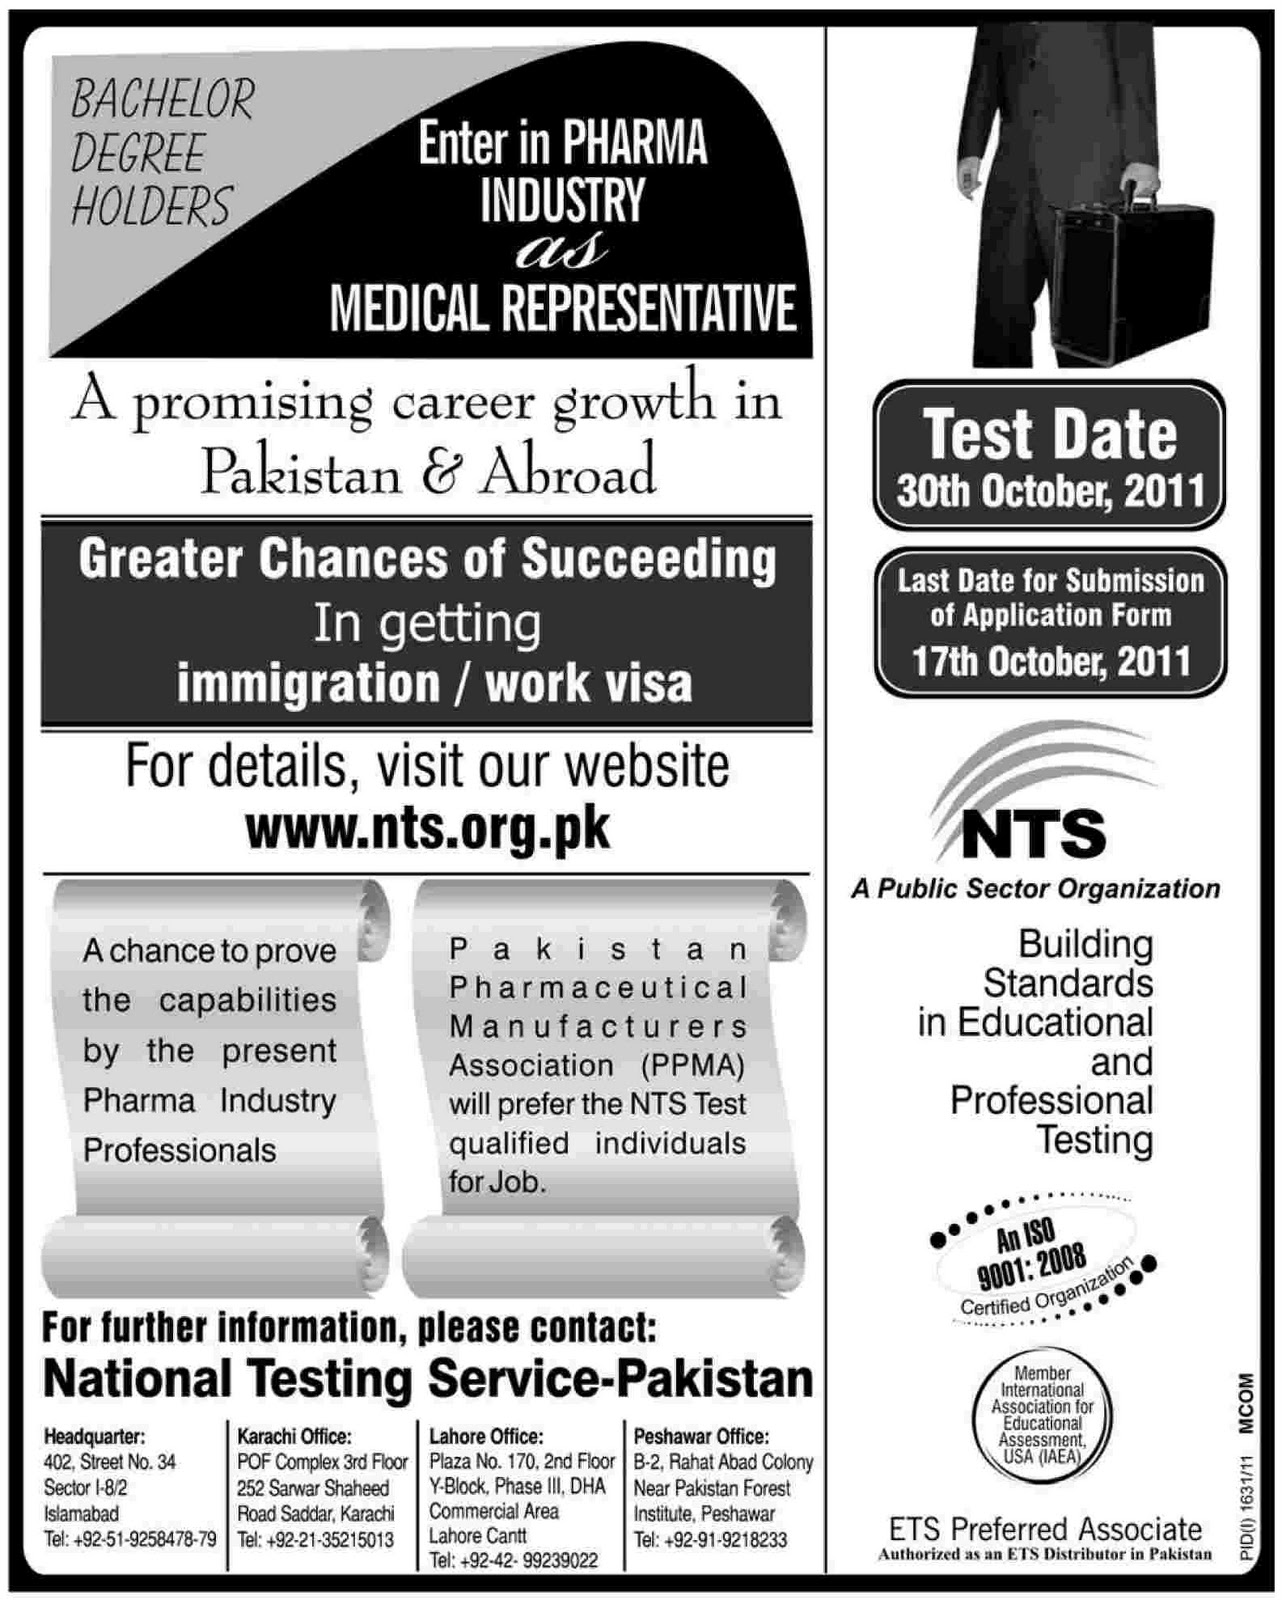 Admission In Pakistan: Enter In Pharma Industry As Medical